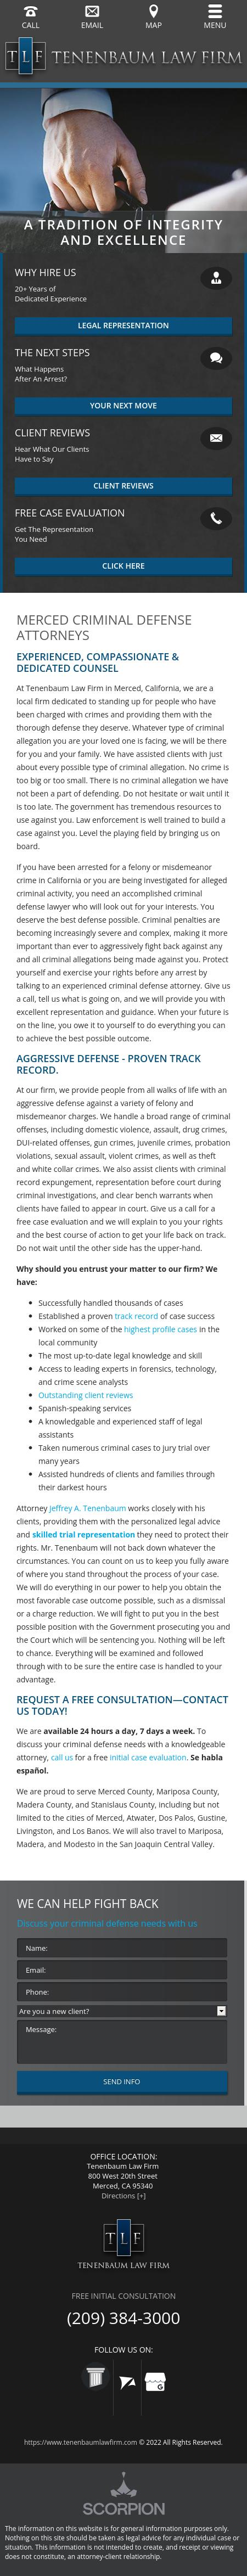 Tenenbaum Law Firm - Merced CA Lawyers